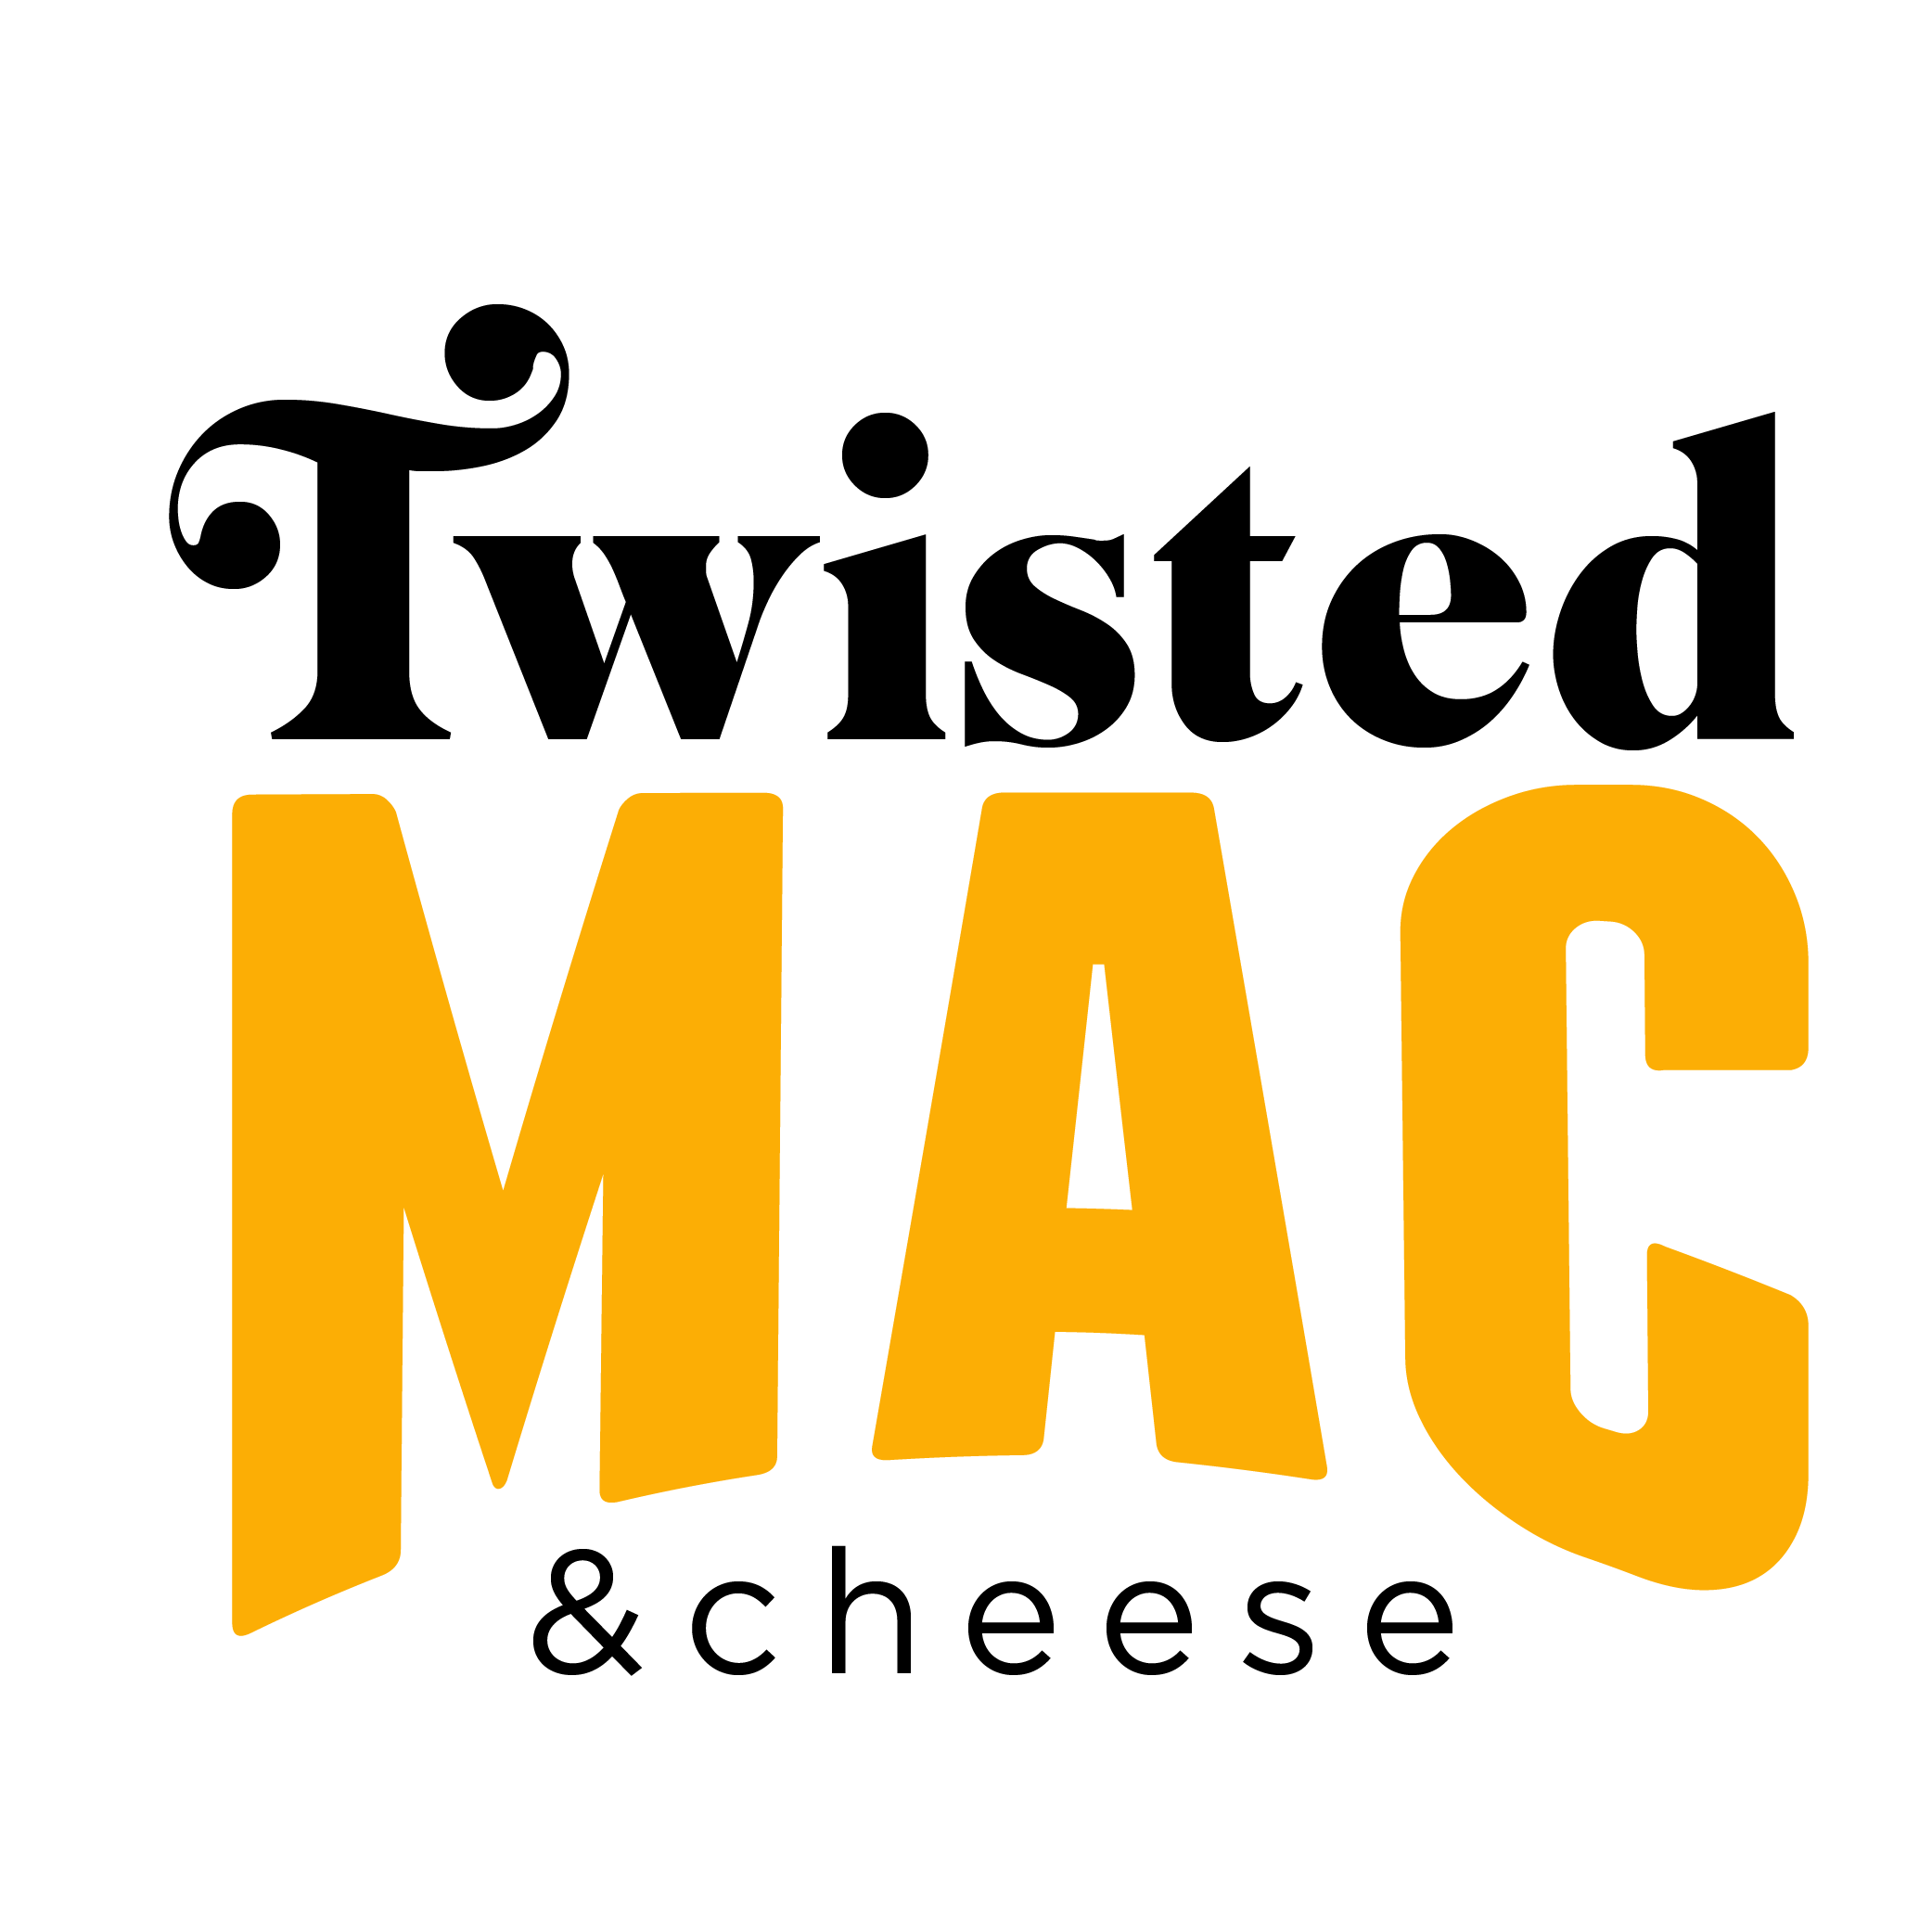 Twisted Mac & Cheese-Logos-01.png